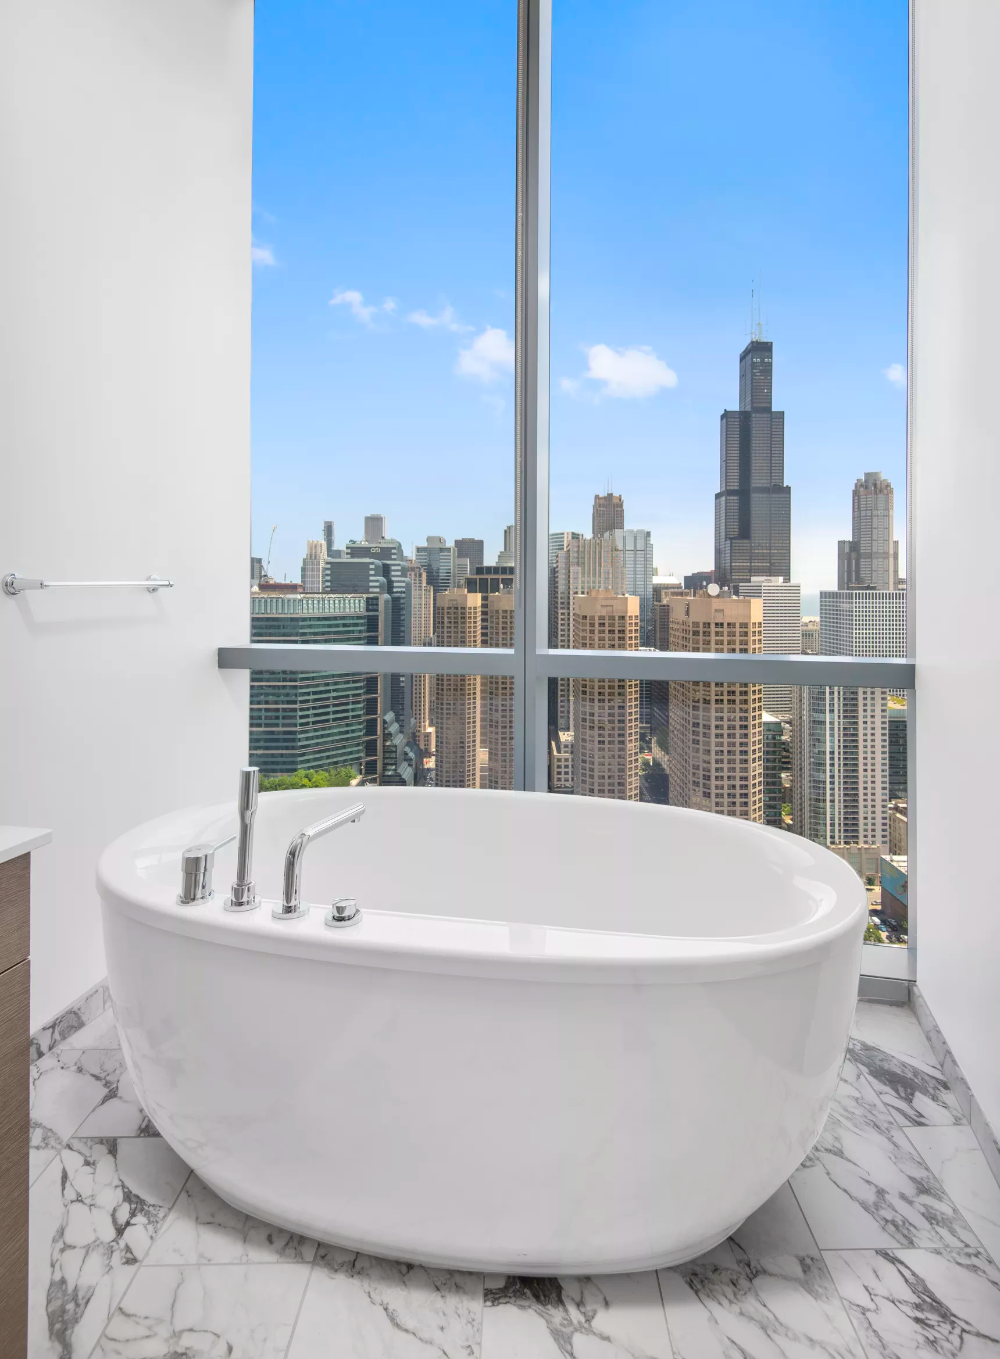 Skyhigh West Loop penthouse rents for 10K per month